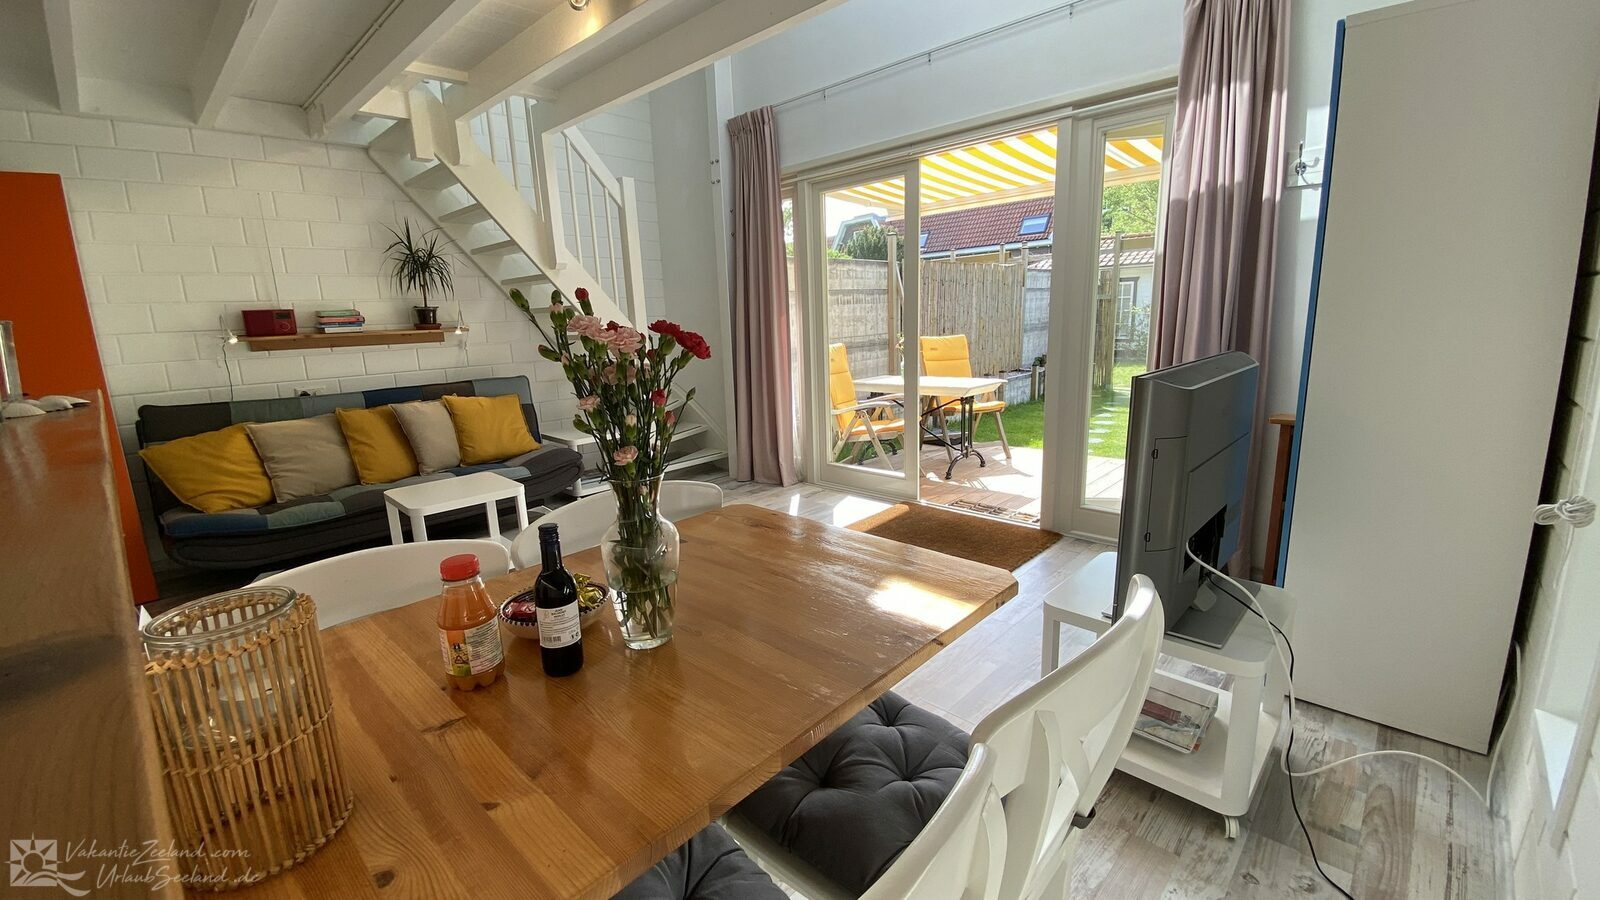 VZ990 Holiday home in Ouddorp